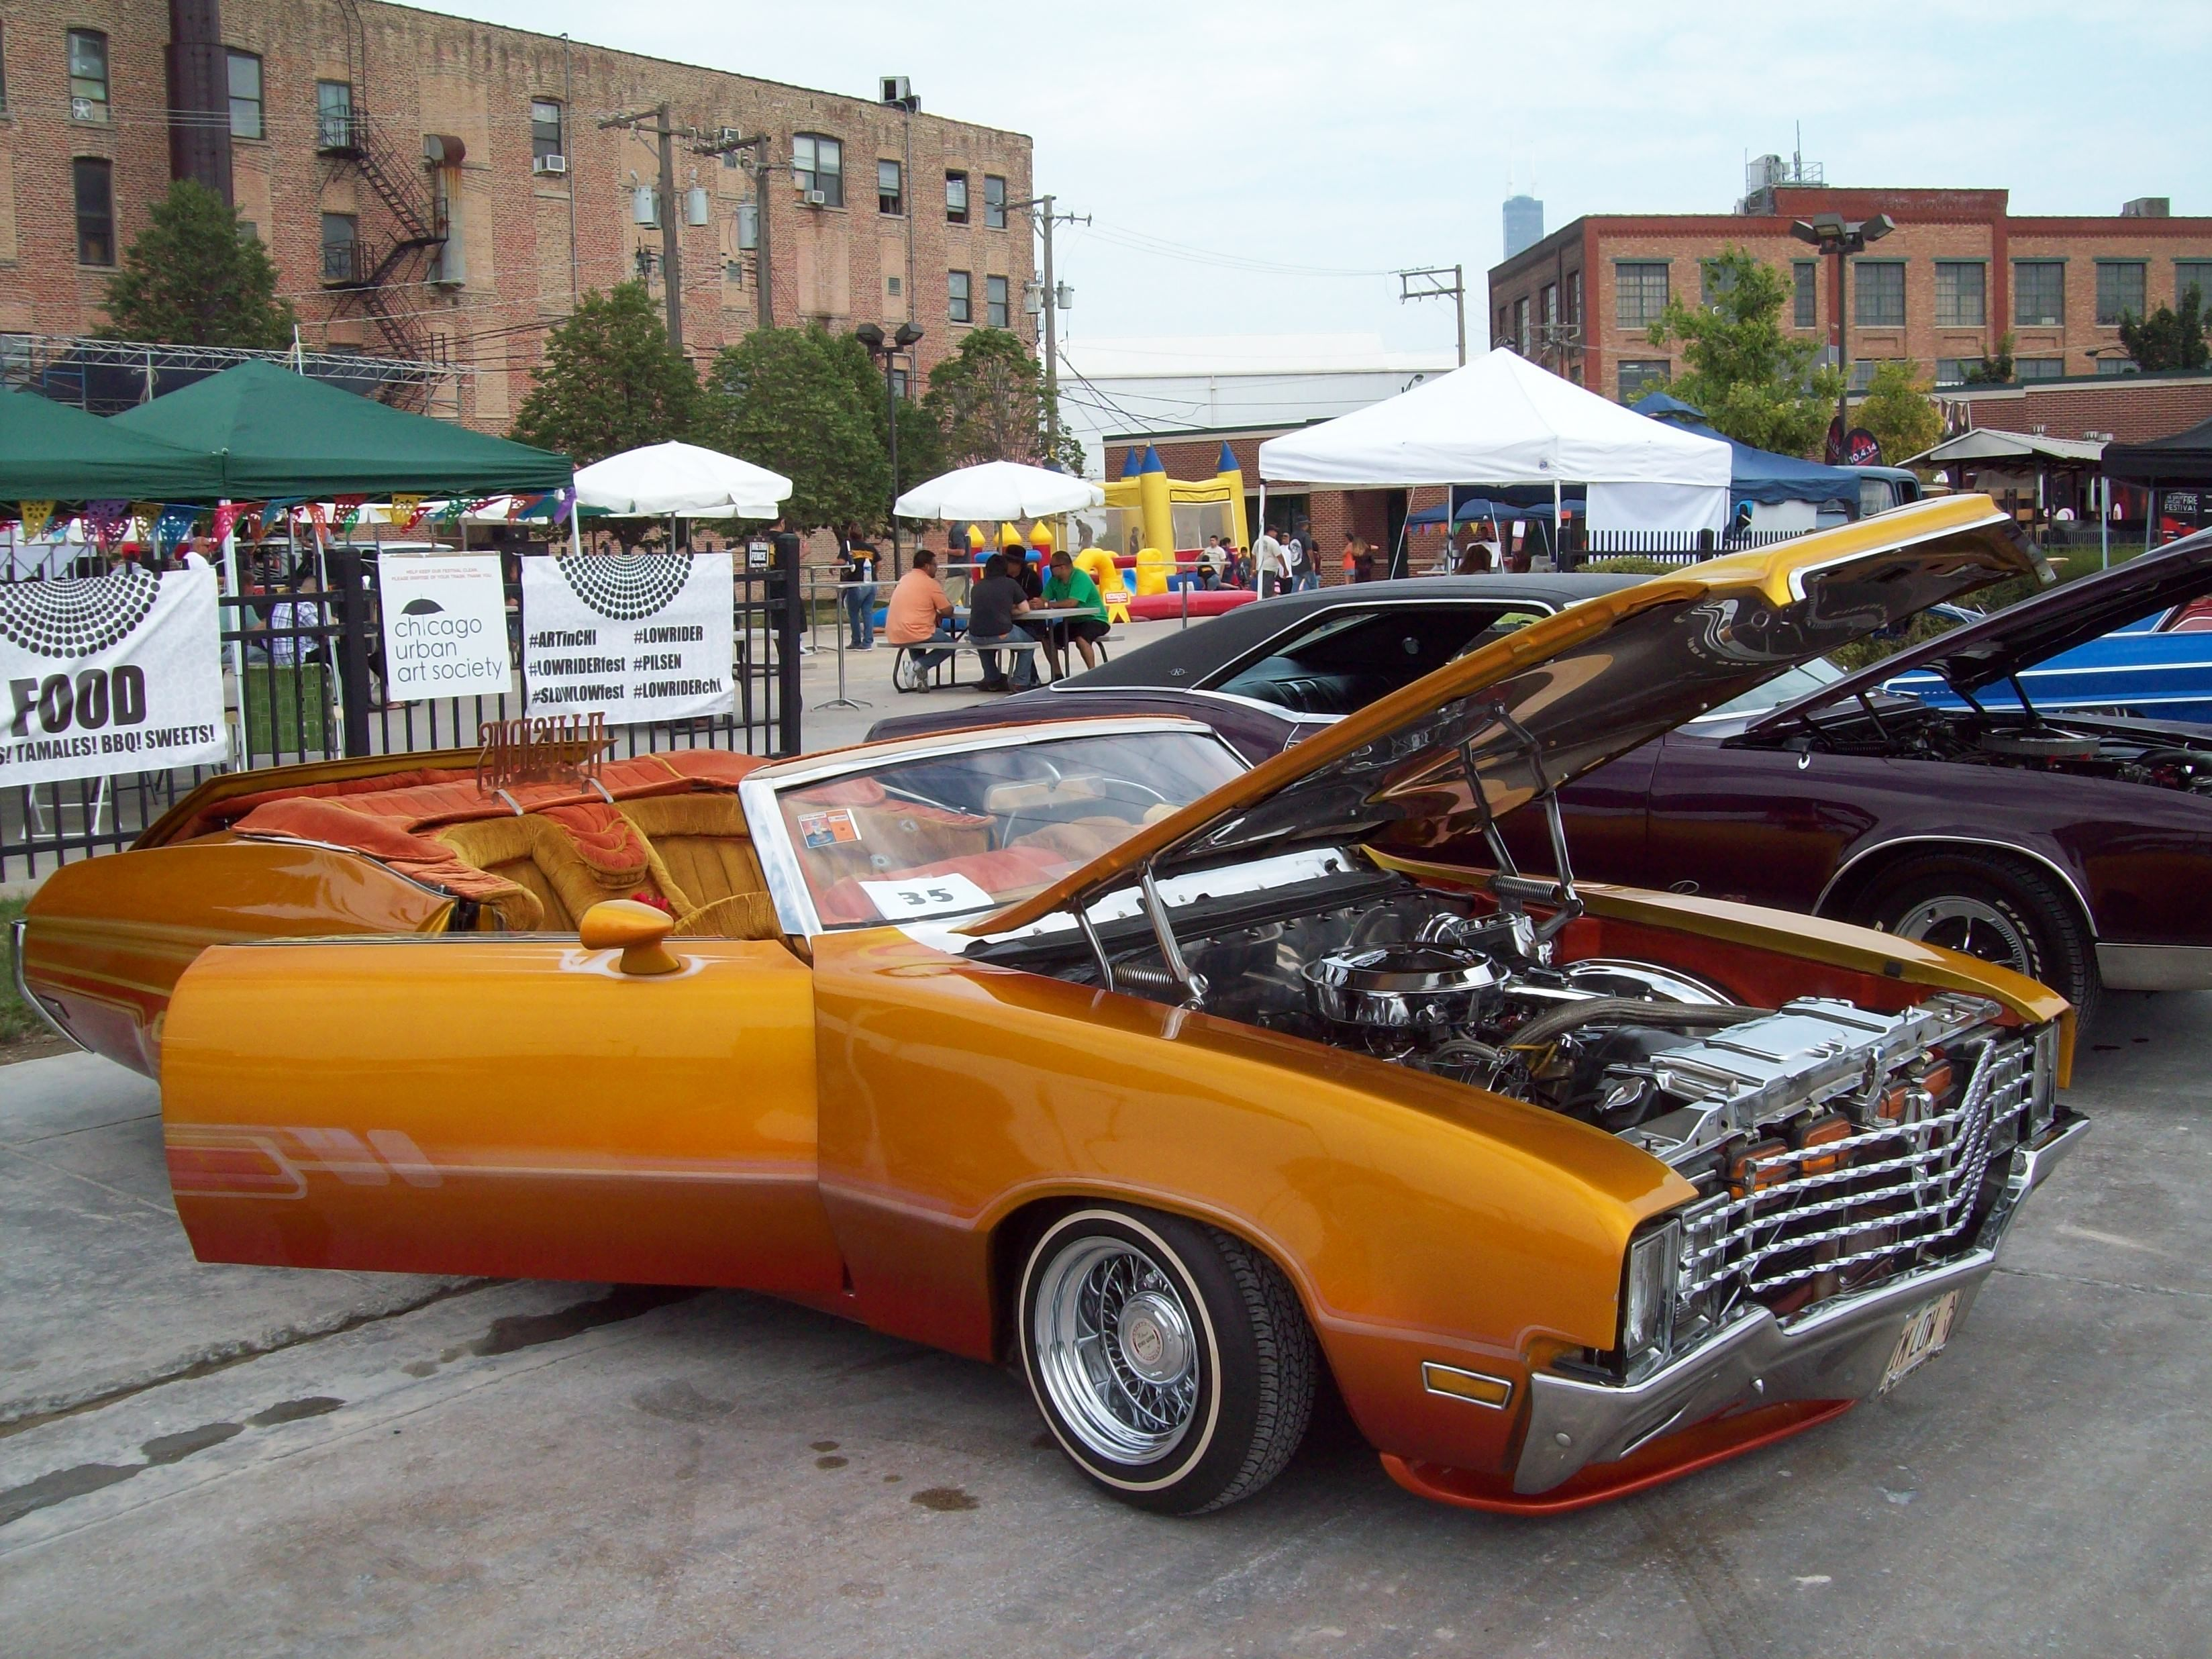 Buick Skylark at 2014 Low Rider Fest in Chicago | Vintage Cars ...